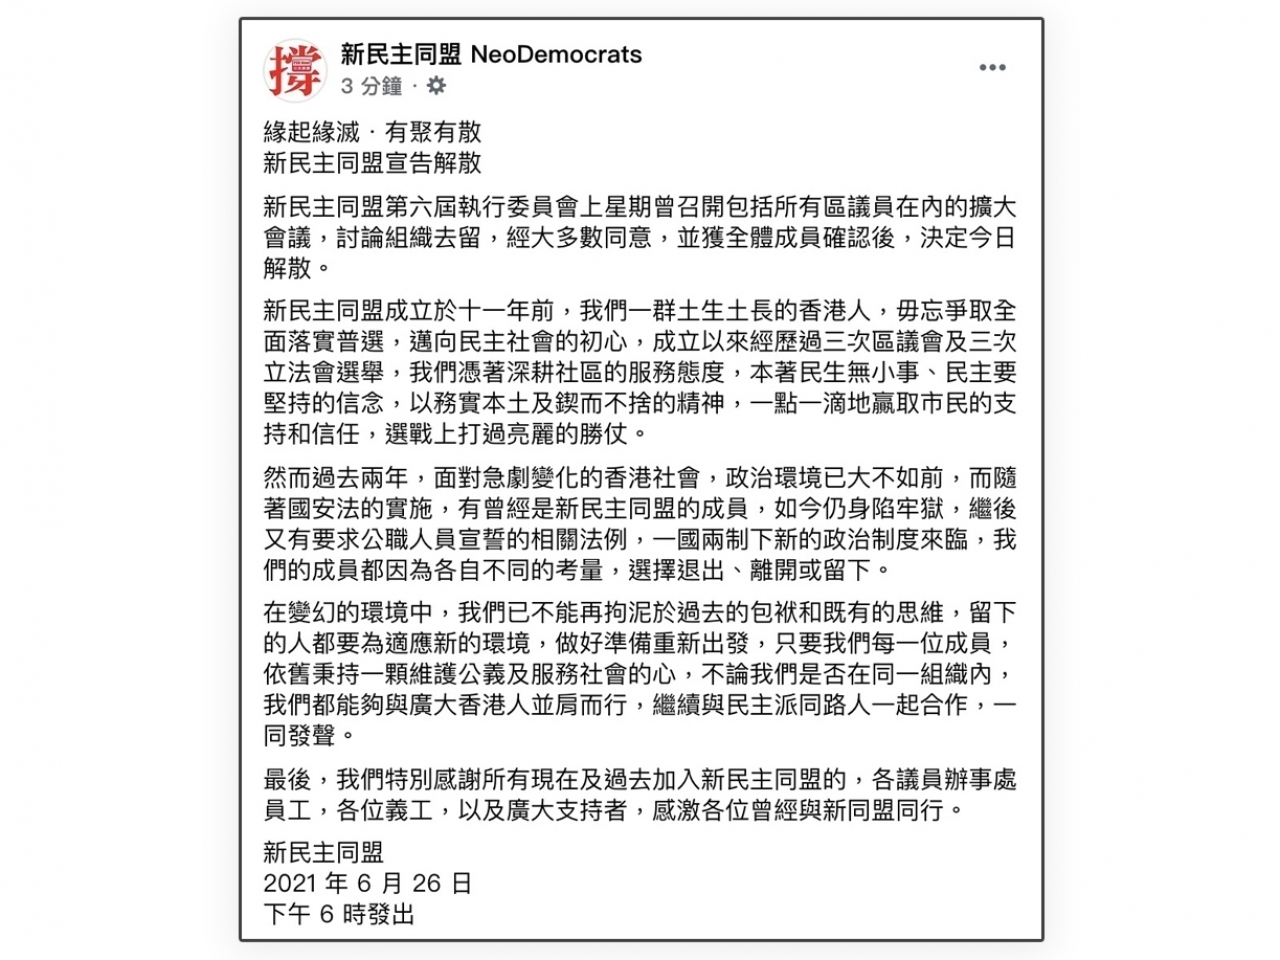 In a Facebook post, the Neo Democrats said Hong Kong had undergone drastic changes over the past two years and the political environment now was much worse than before. Photo: RTHK